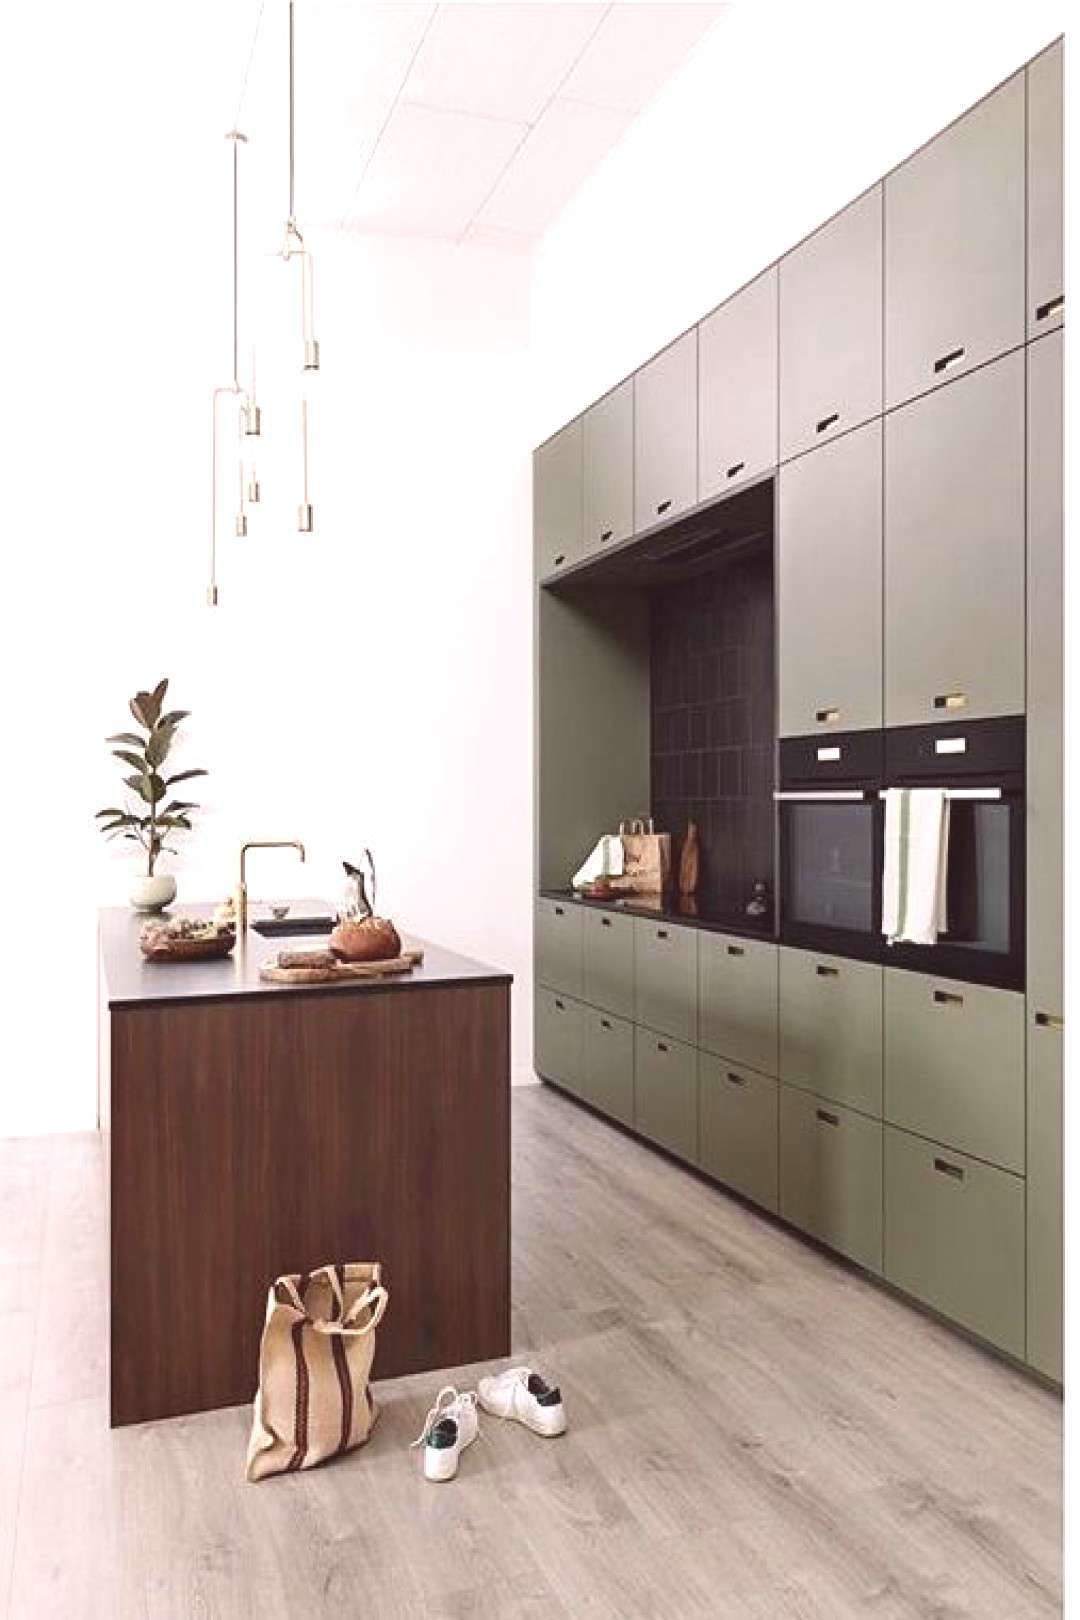 67 Change Your State of Mind by Change Your State of Mind by Altering The Soothing Green Kitchen C